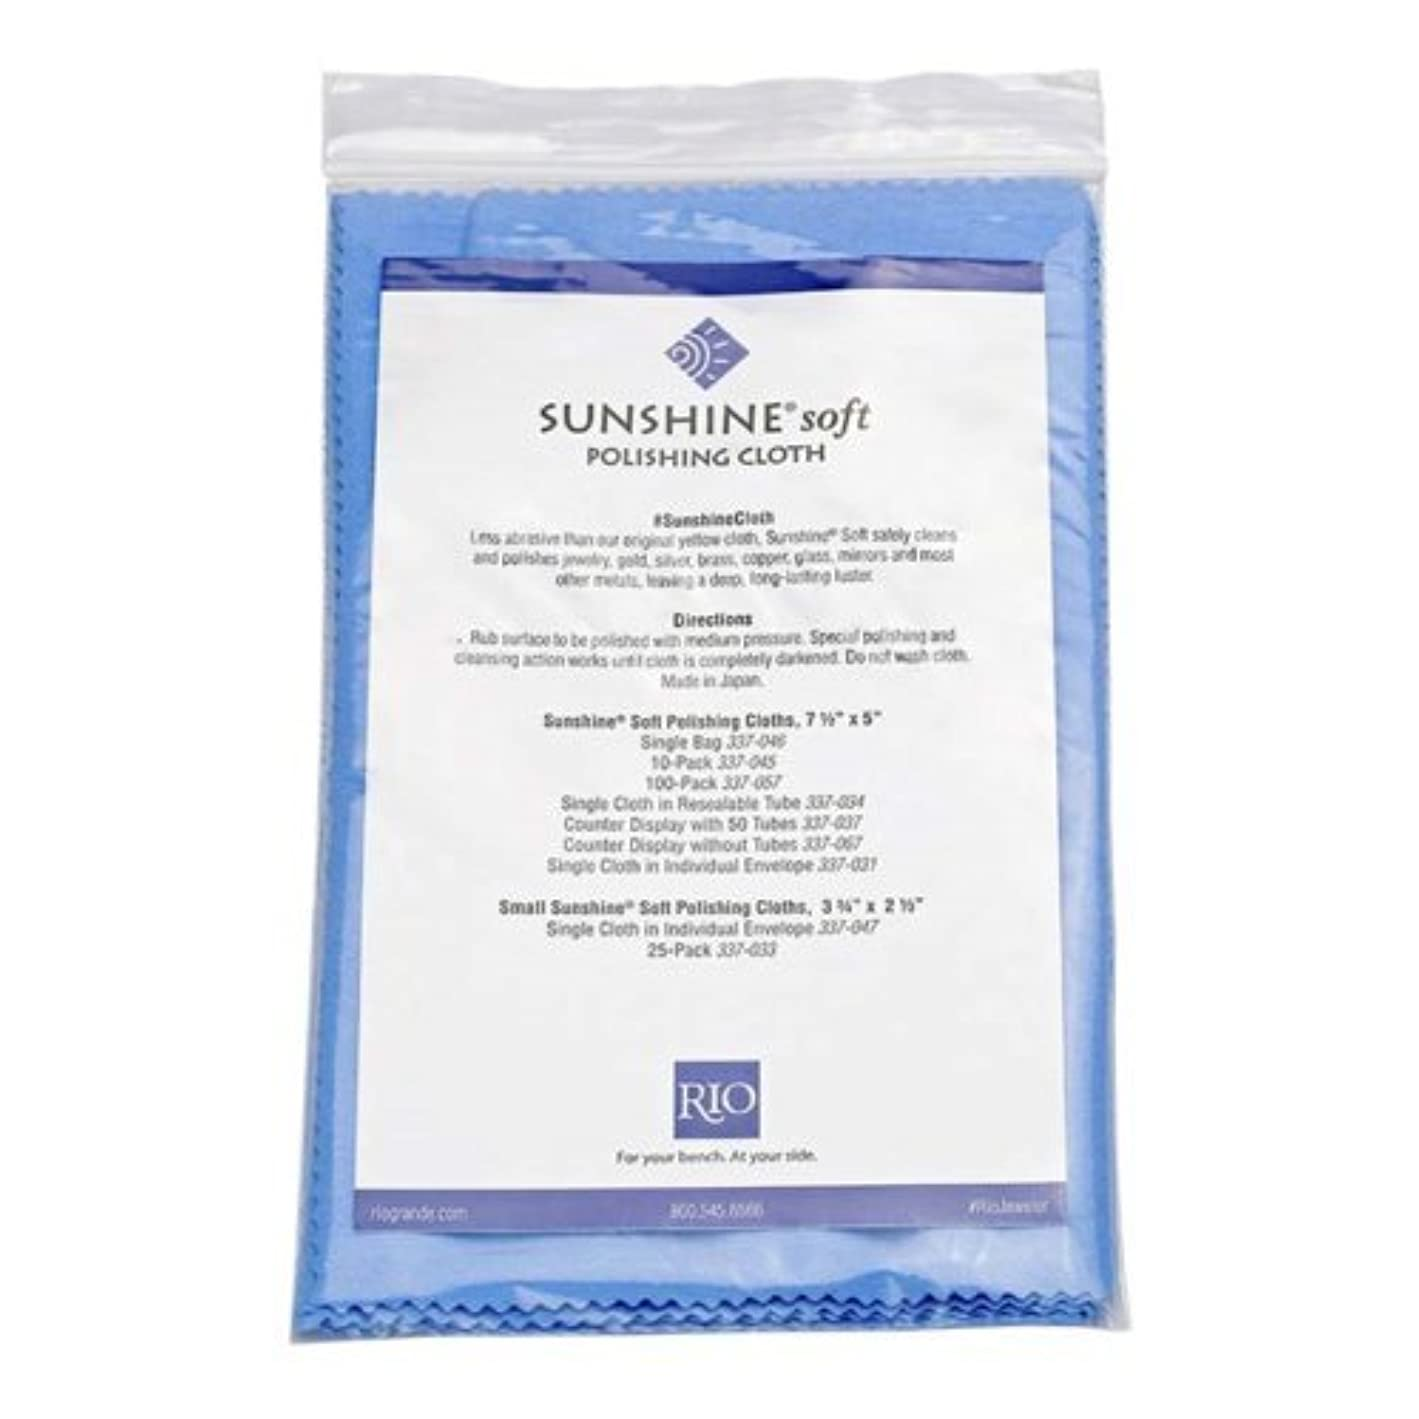 5 Individually Packaged and Sealed Sunshine Blue Soft Polishing Cloth Jewelry Polisher brass gold silver o18641729145896